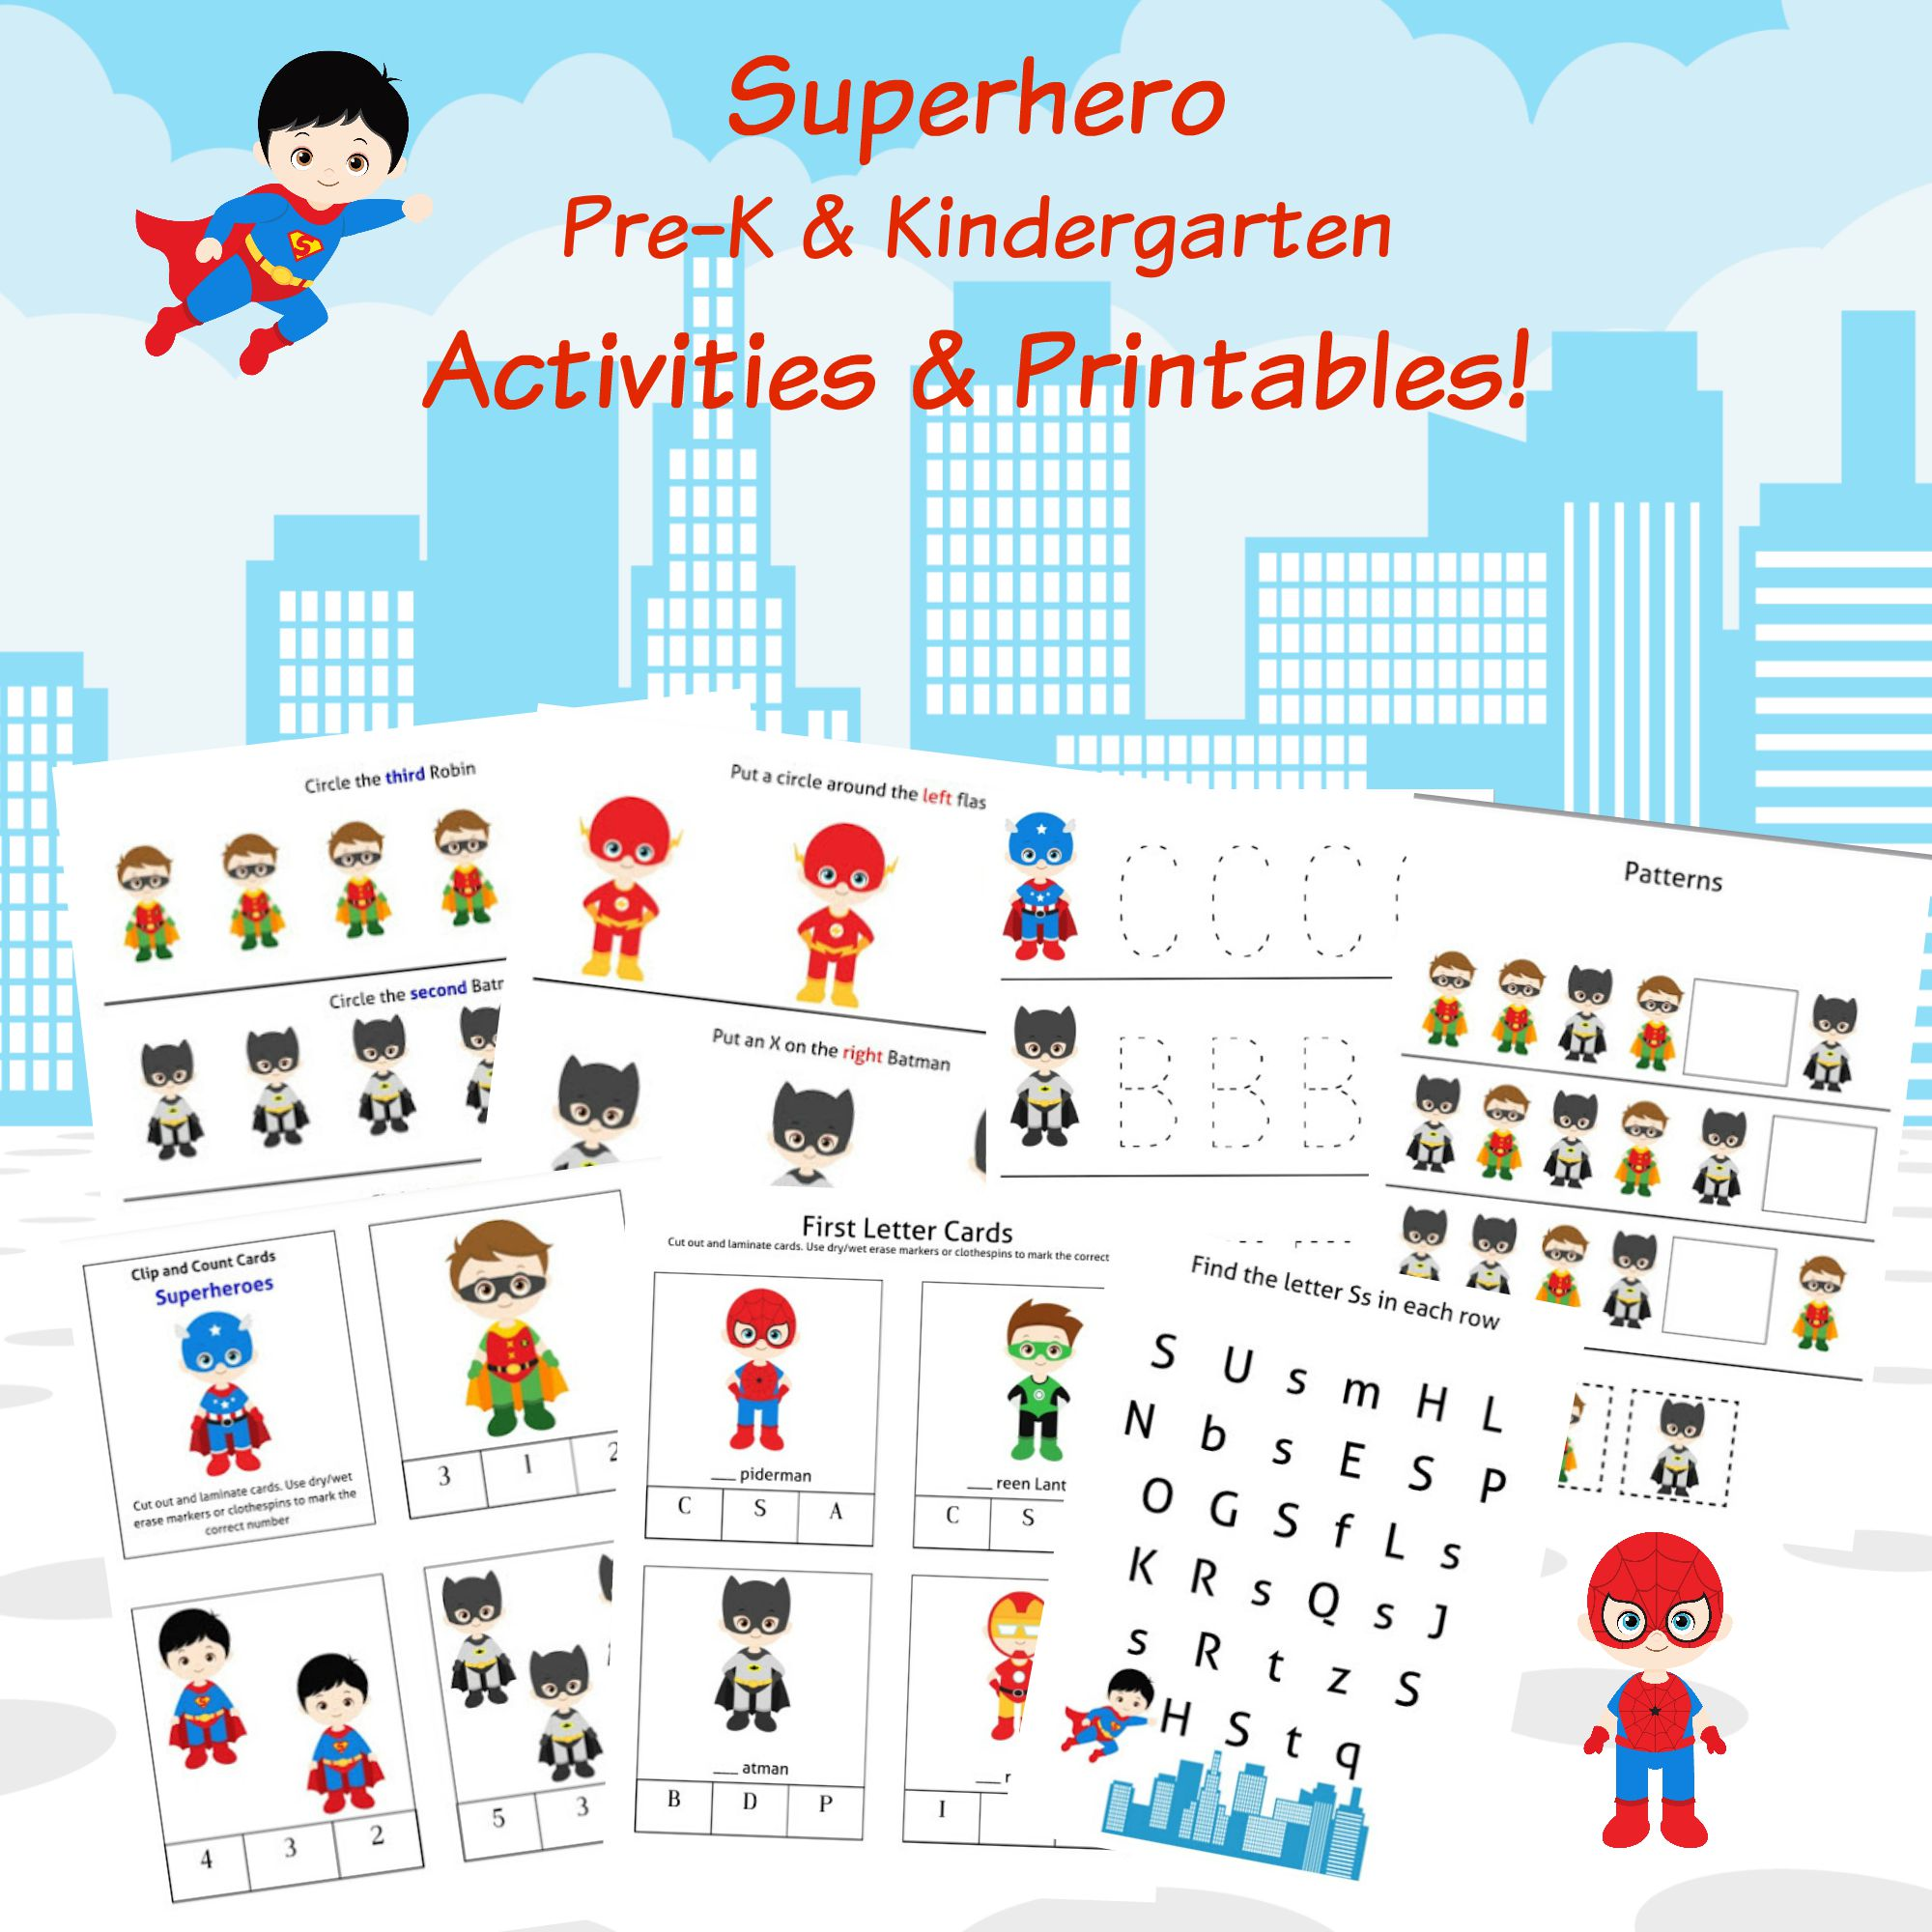 Uncategorized Superhero Printable Activities free 30 page superheroes printables activities printable